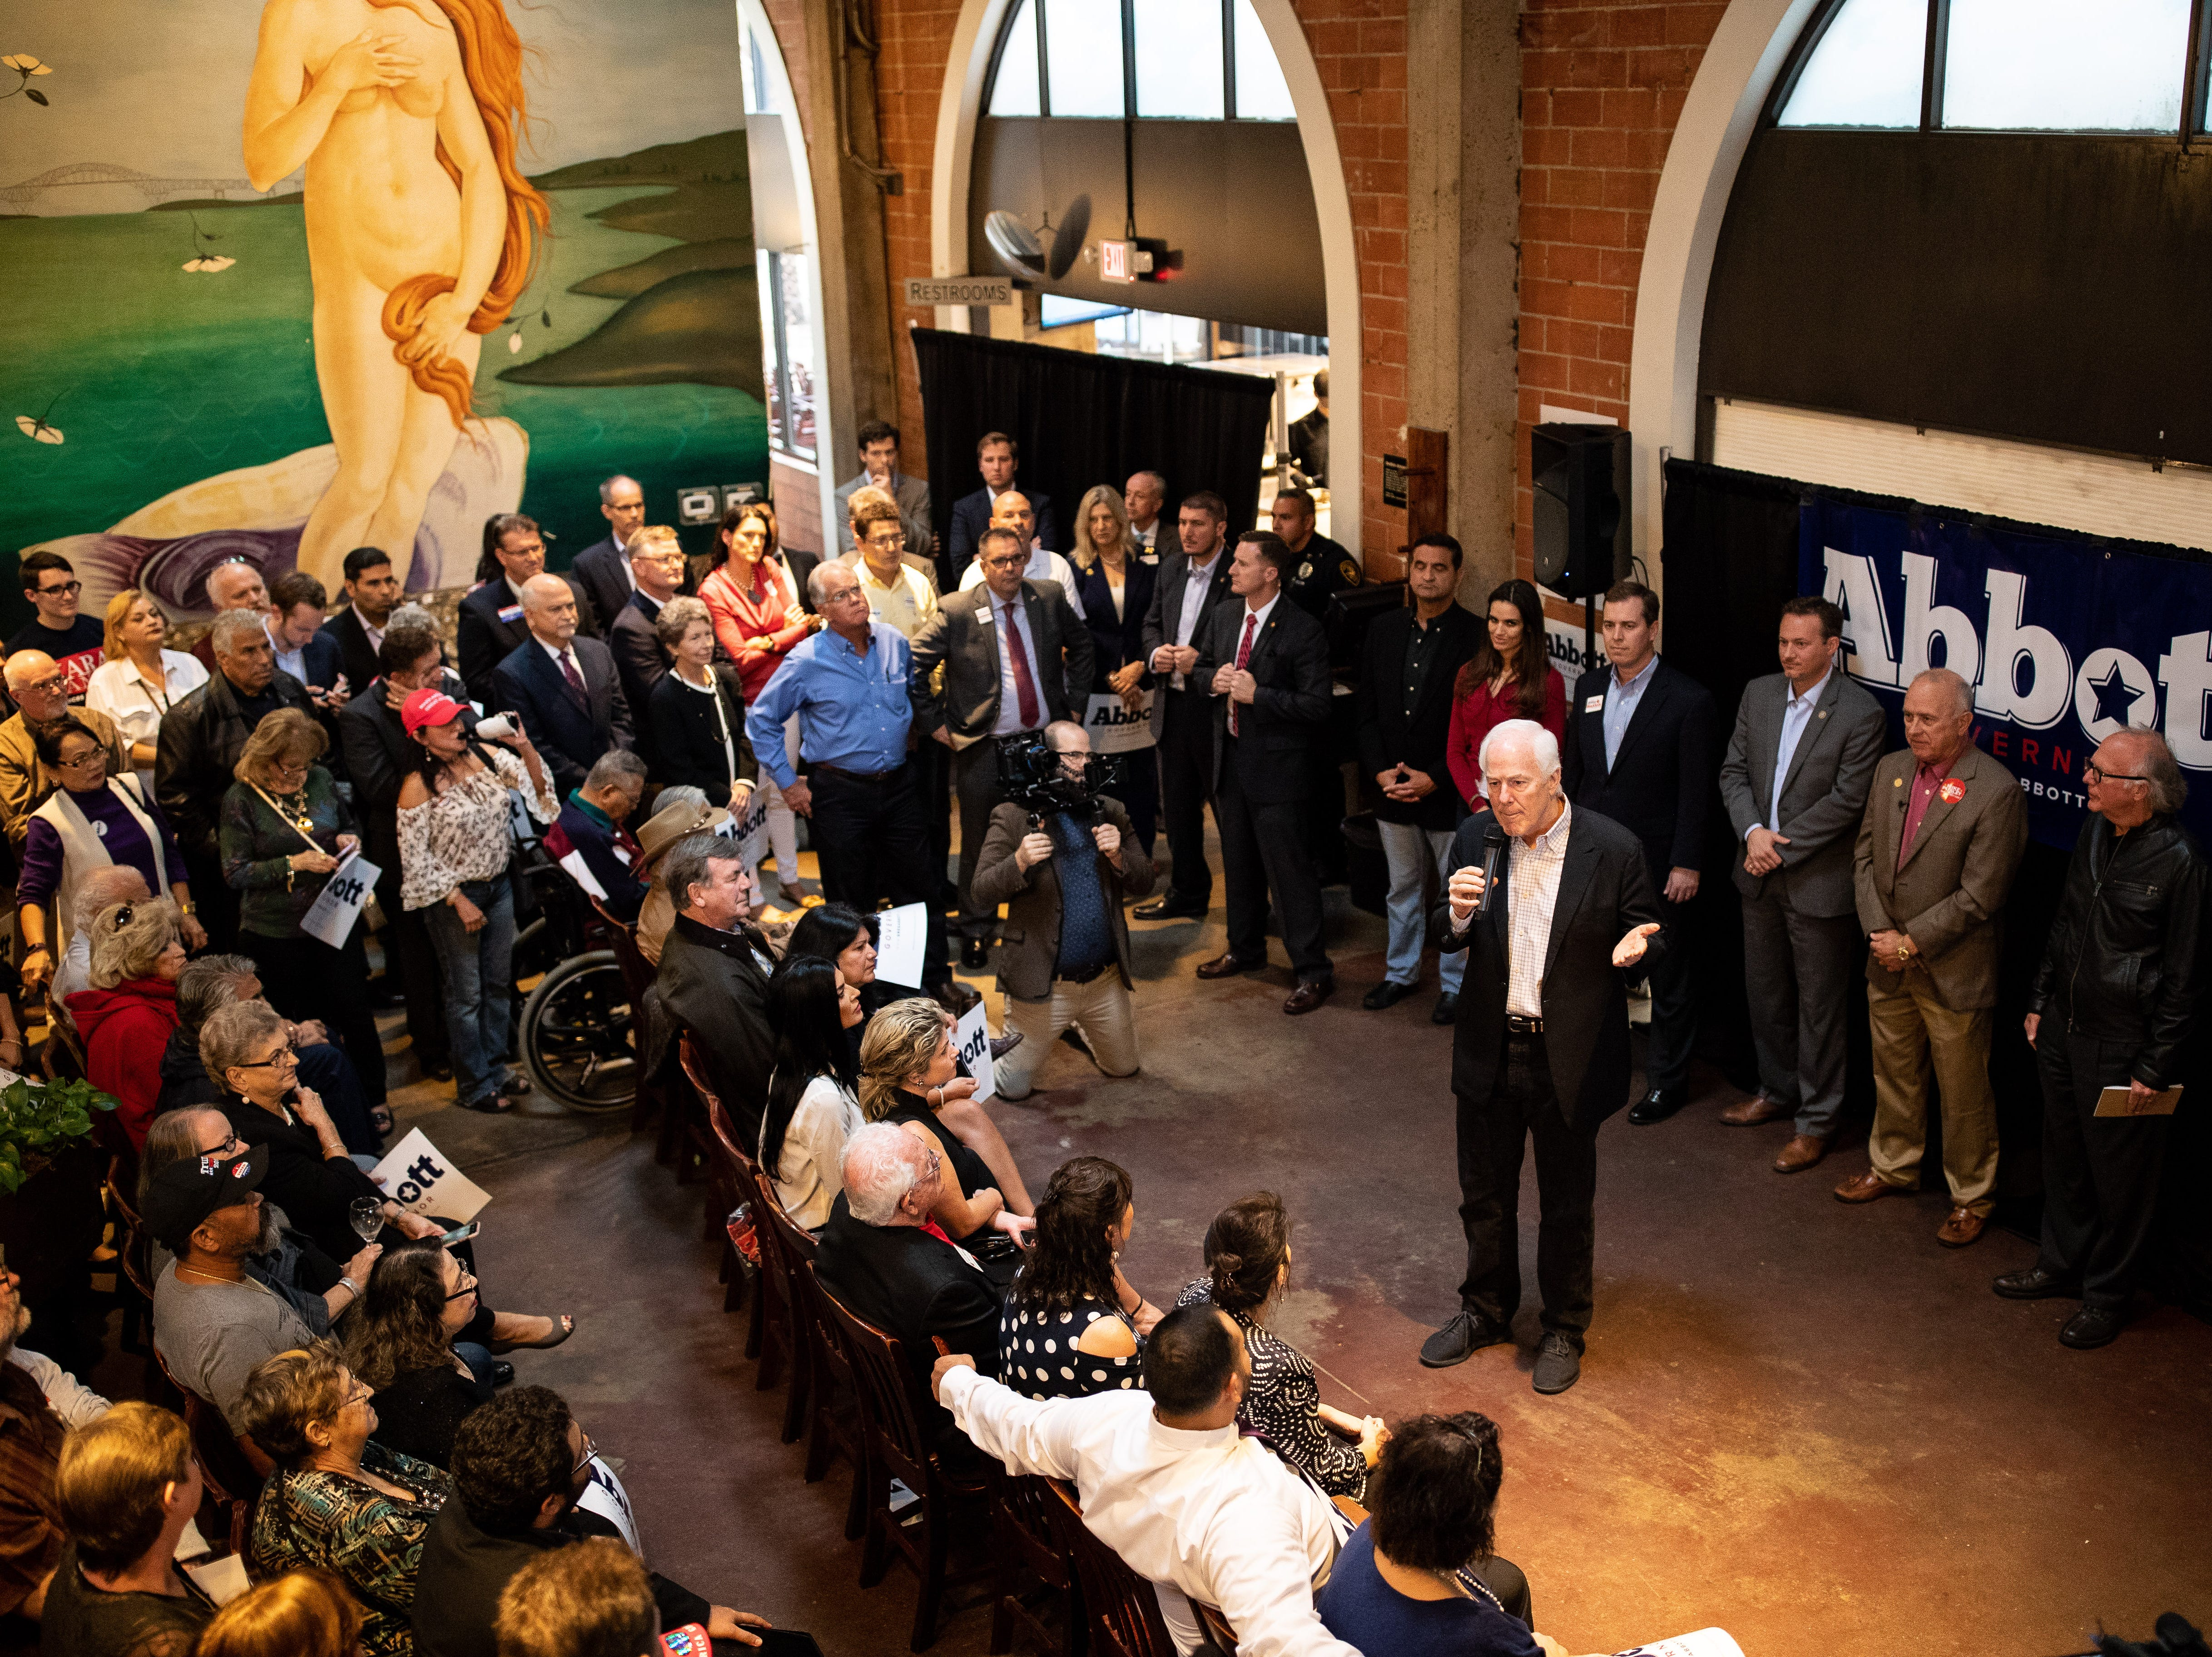 U.S. Sen. John Cornyn T.X speaks at a Get Out the Vote stop in Corpus Christi at Water Street Oyster Bar on Thursday, Oct. 25, 2018.